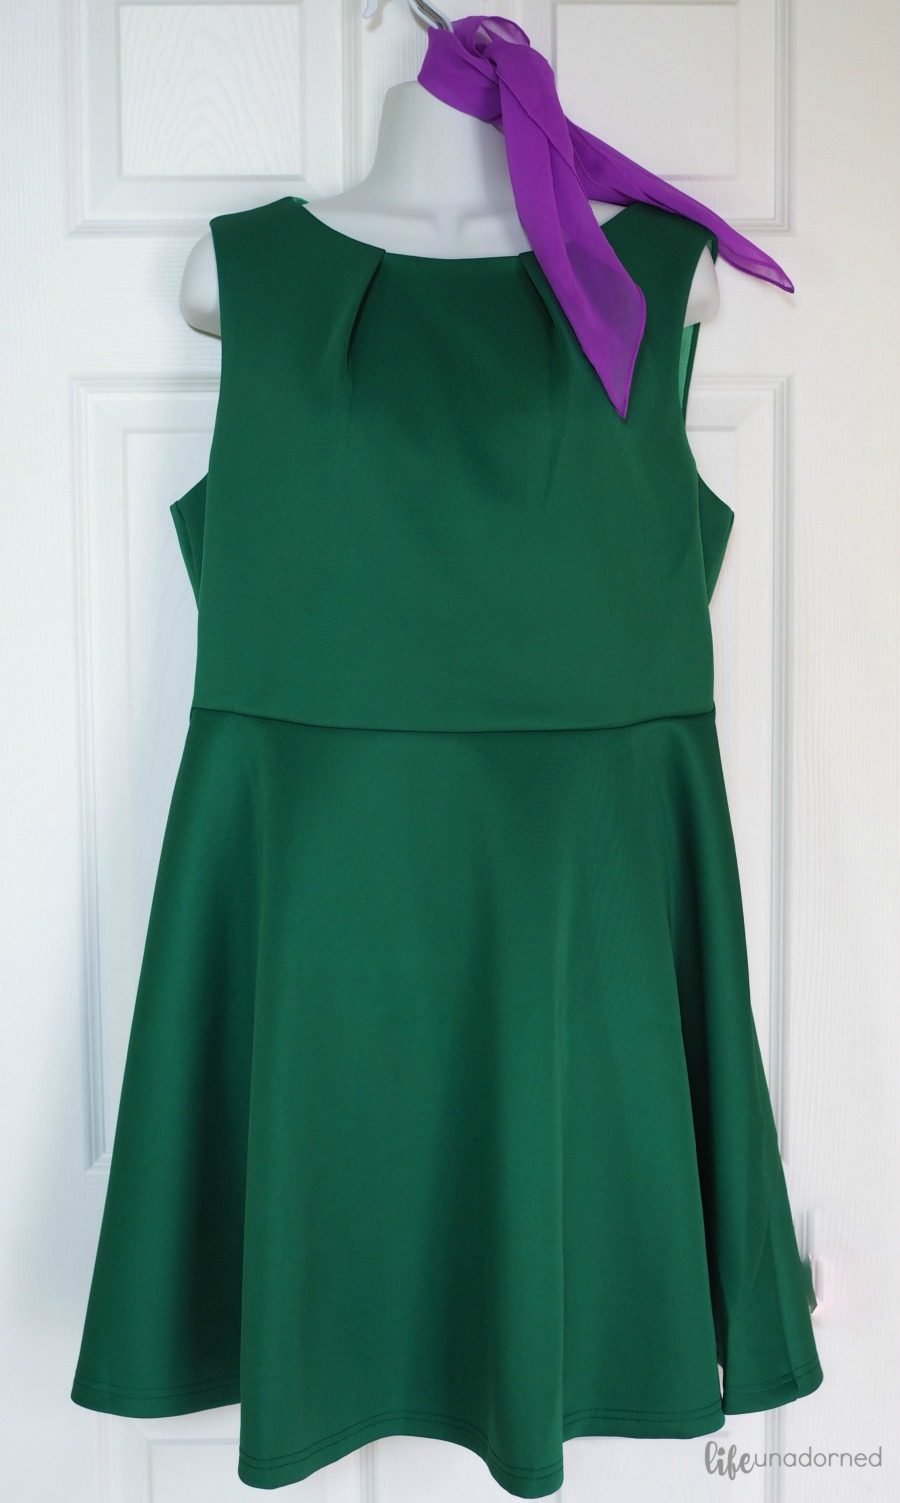 green dress and purple scarf